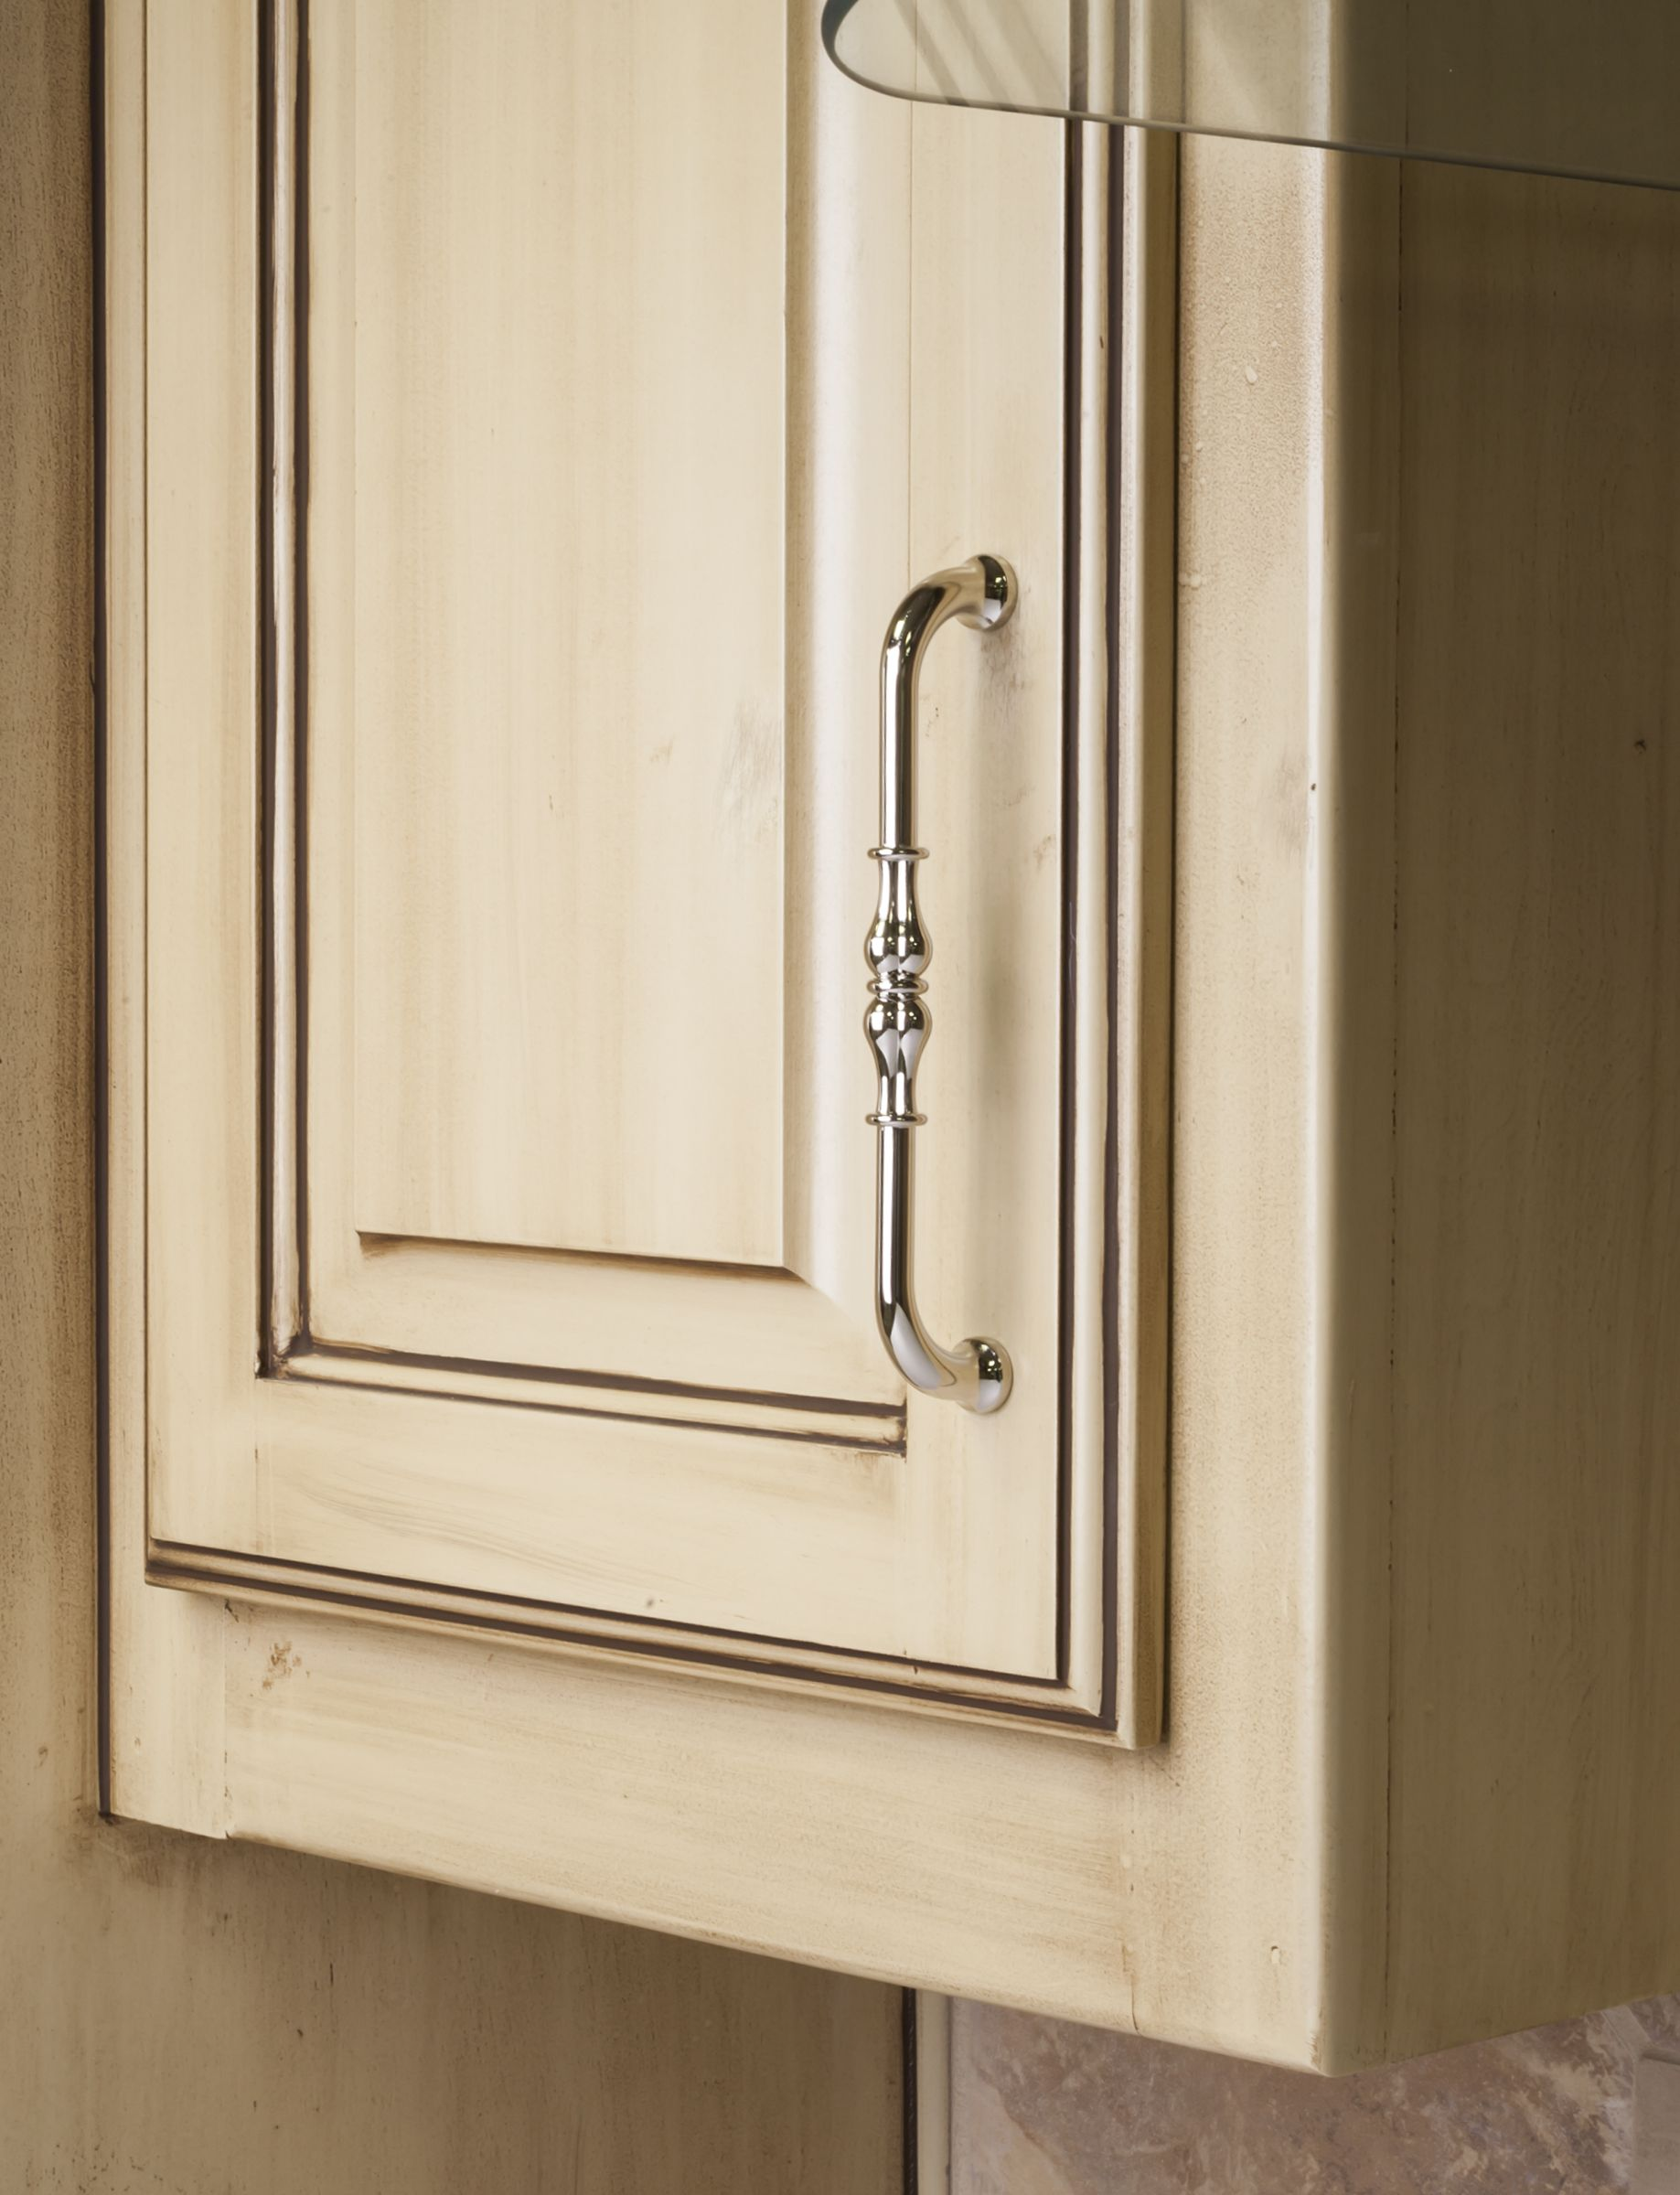 Bella cabinet pull from Jeffrey Alexander by Hardware Resources